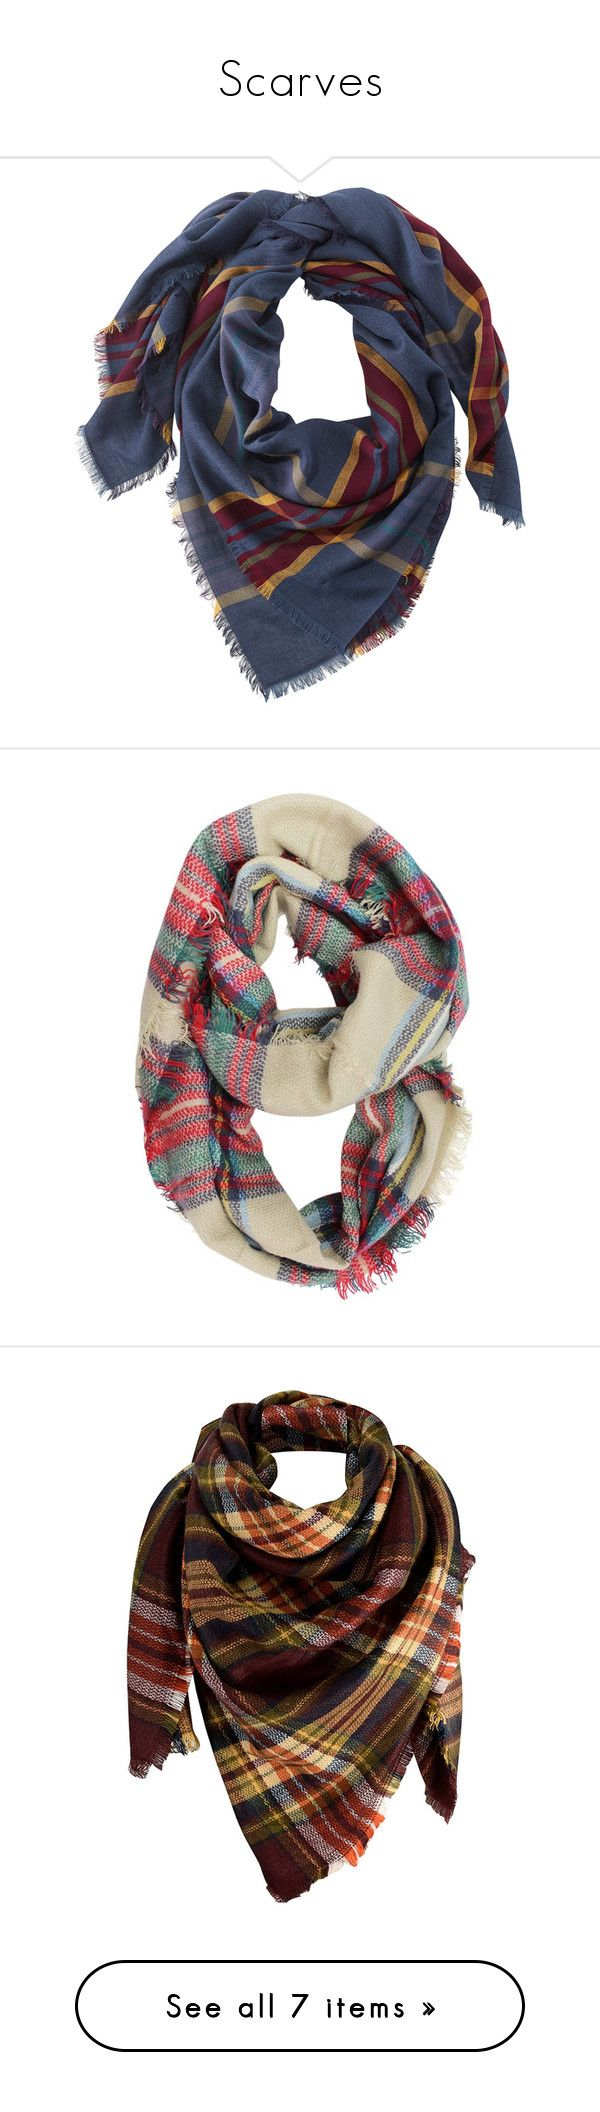 """""""Scarves"""" by taylormaccallister ❤ liked on Polyvore featuring accessories, scarves, tartan plaid shawl, tartan plaid scarves, tartan scarves, plaid shawl, lightweight scarves, beige, lightweight and circle scarves"""